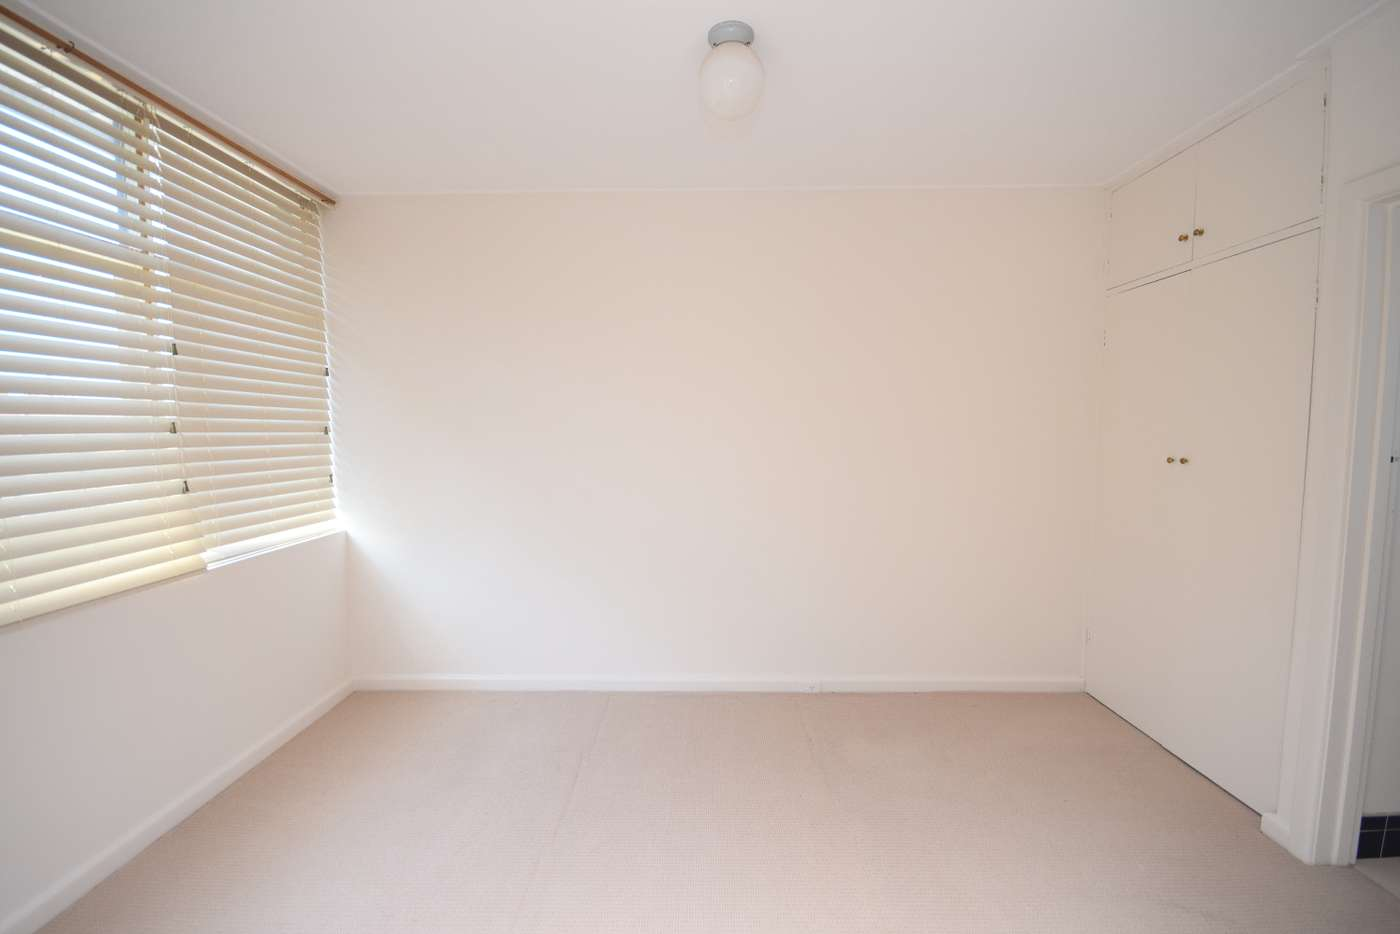 Seventh view of Homely apartment listing, 13/9 Herbert Street, St Kilda VIC 3182